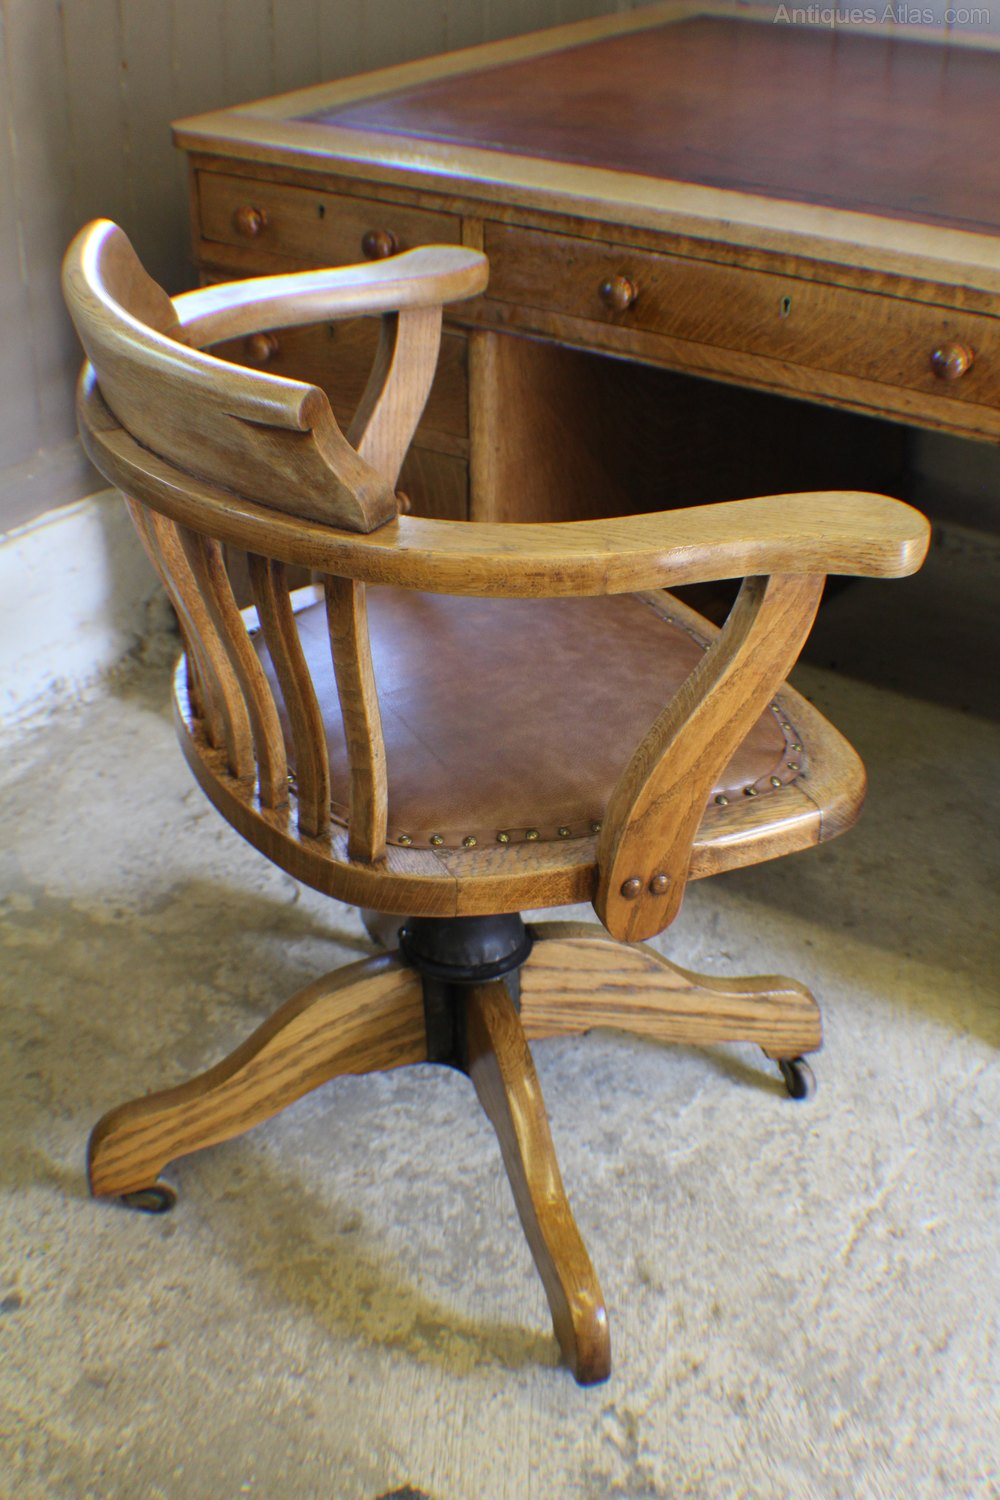 ... Antique Swivel and Revolving Chairs office desk - Vintage Oak & 1930s Adjustable Desk Office Chair - Antiques Atlas